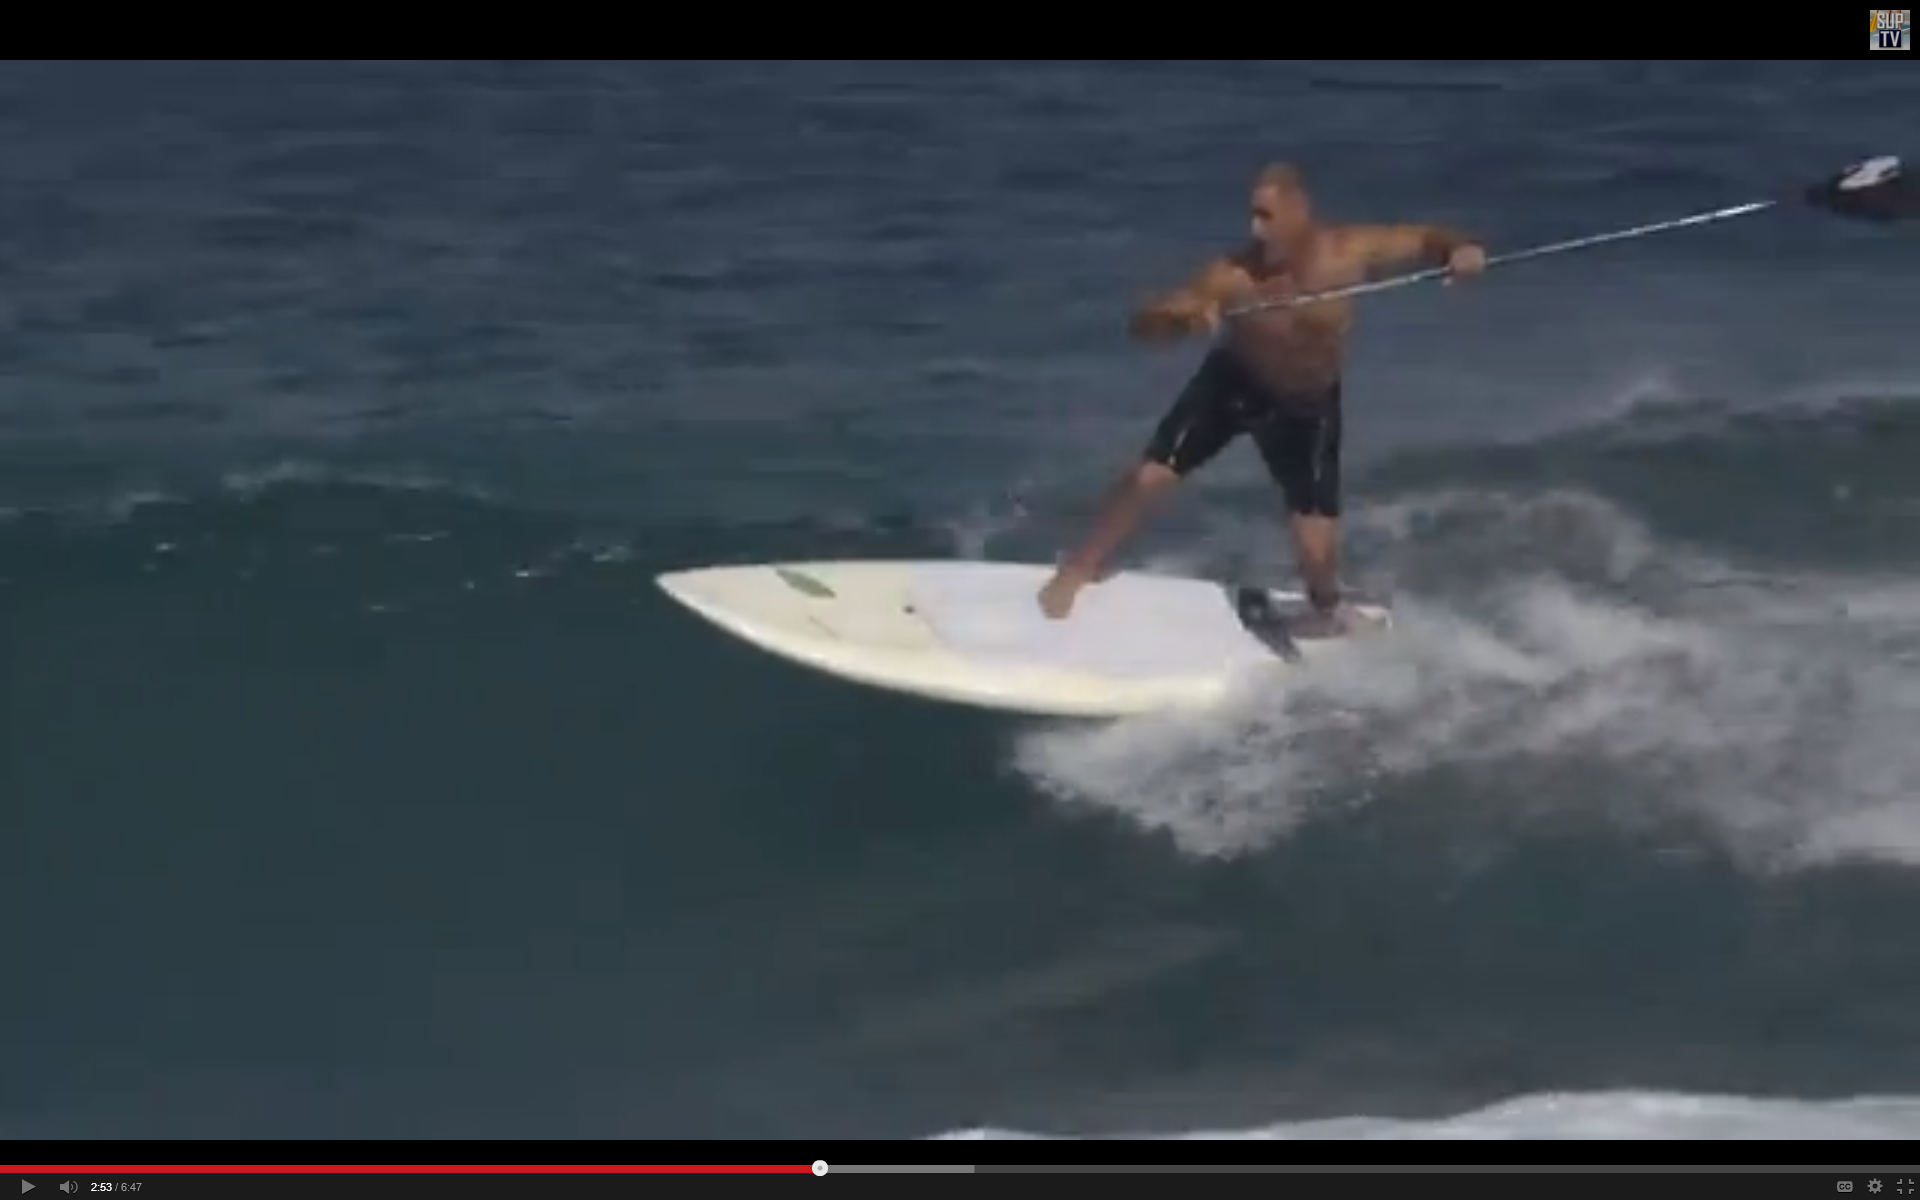 Surf Machine appears at the 2:50, 3:14 and 3:54 marks. Brad appears at 5:05.